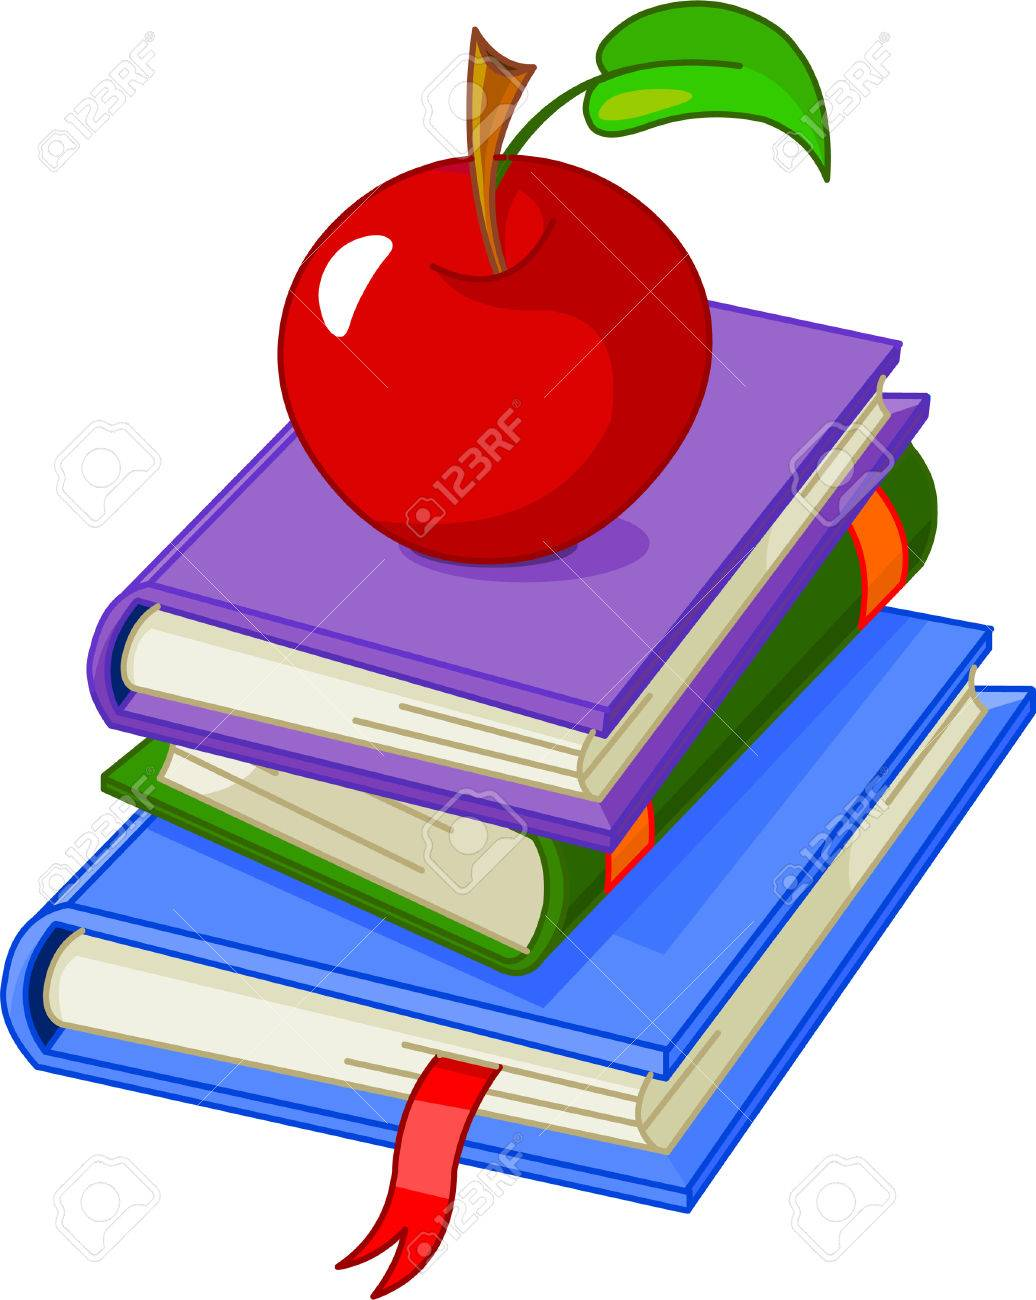 Pile book with red apple illustration, isolated on white background Stock Vector - 7056691